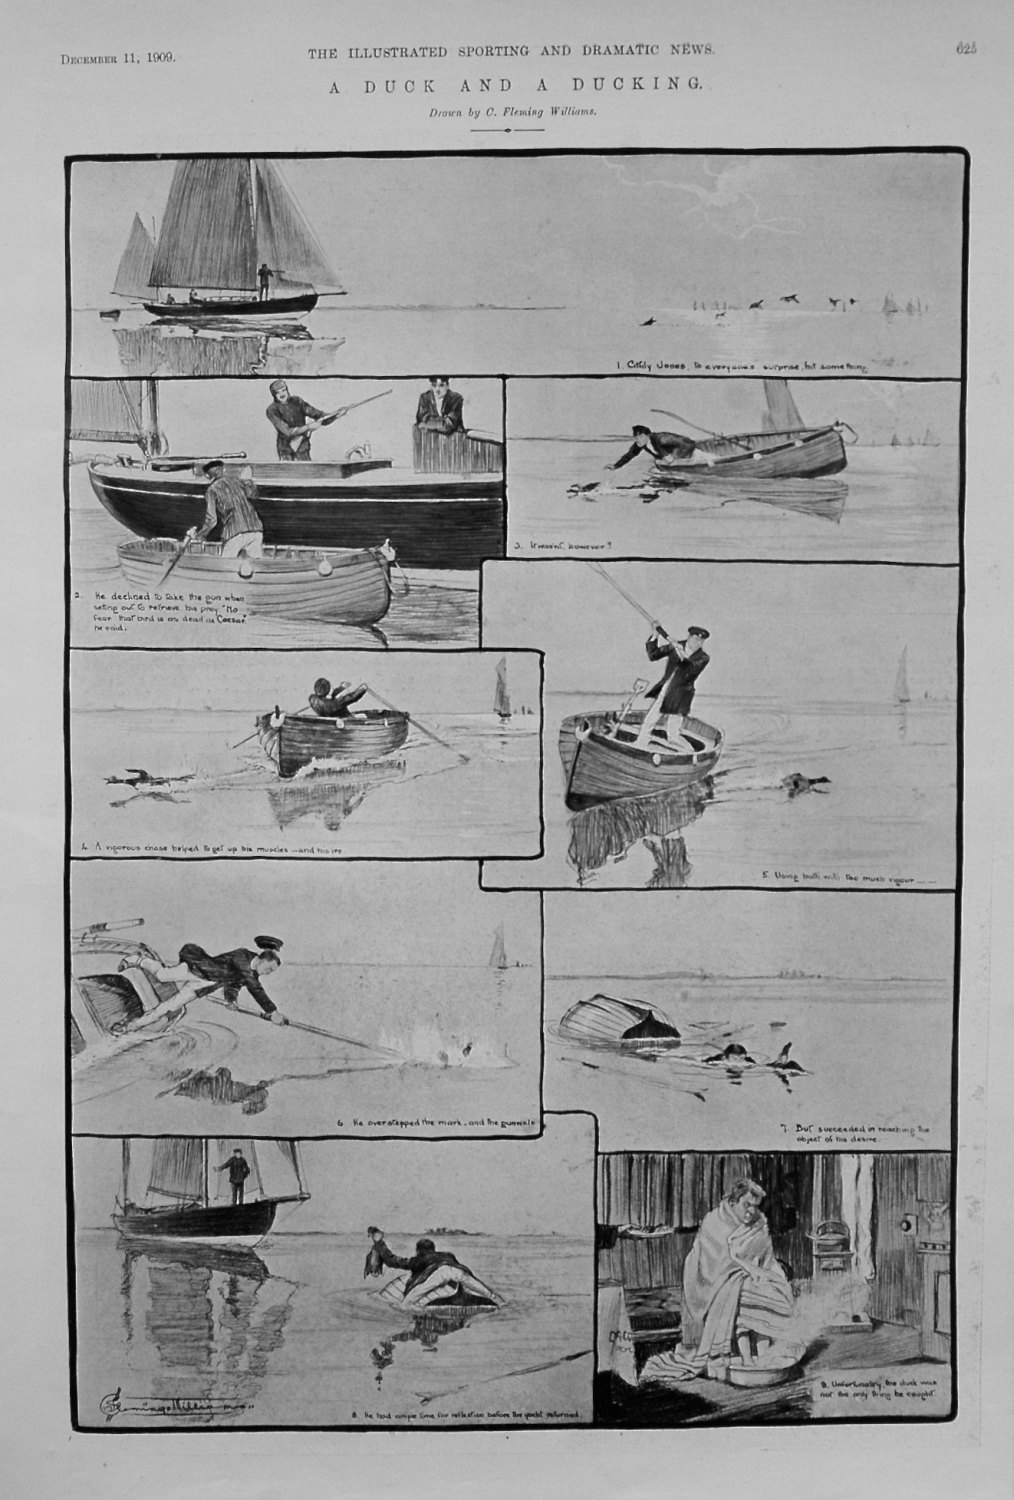 A Duck and a Ducking. 1909